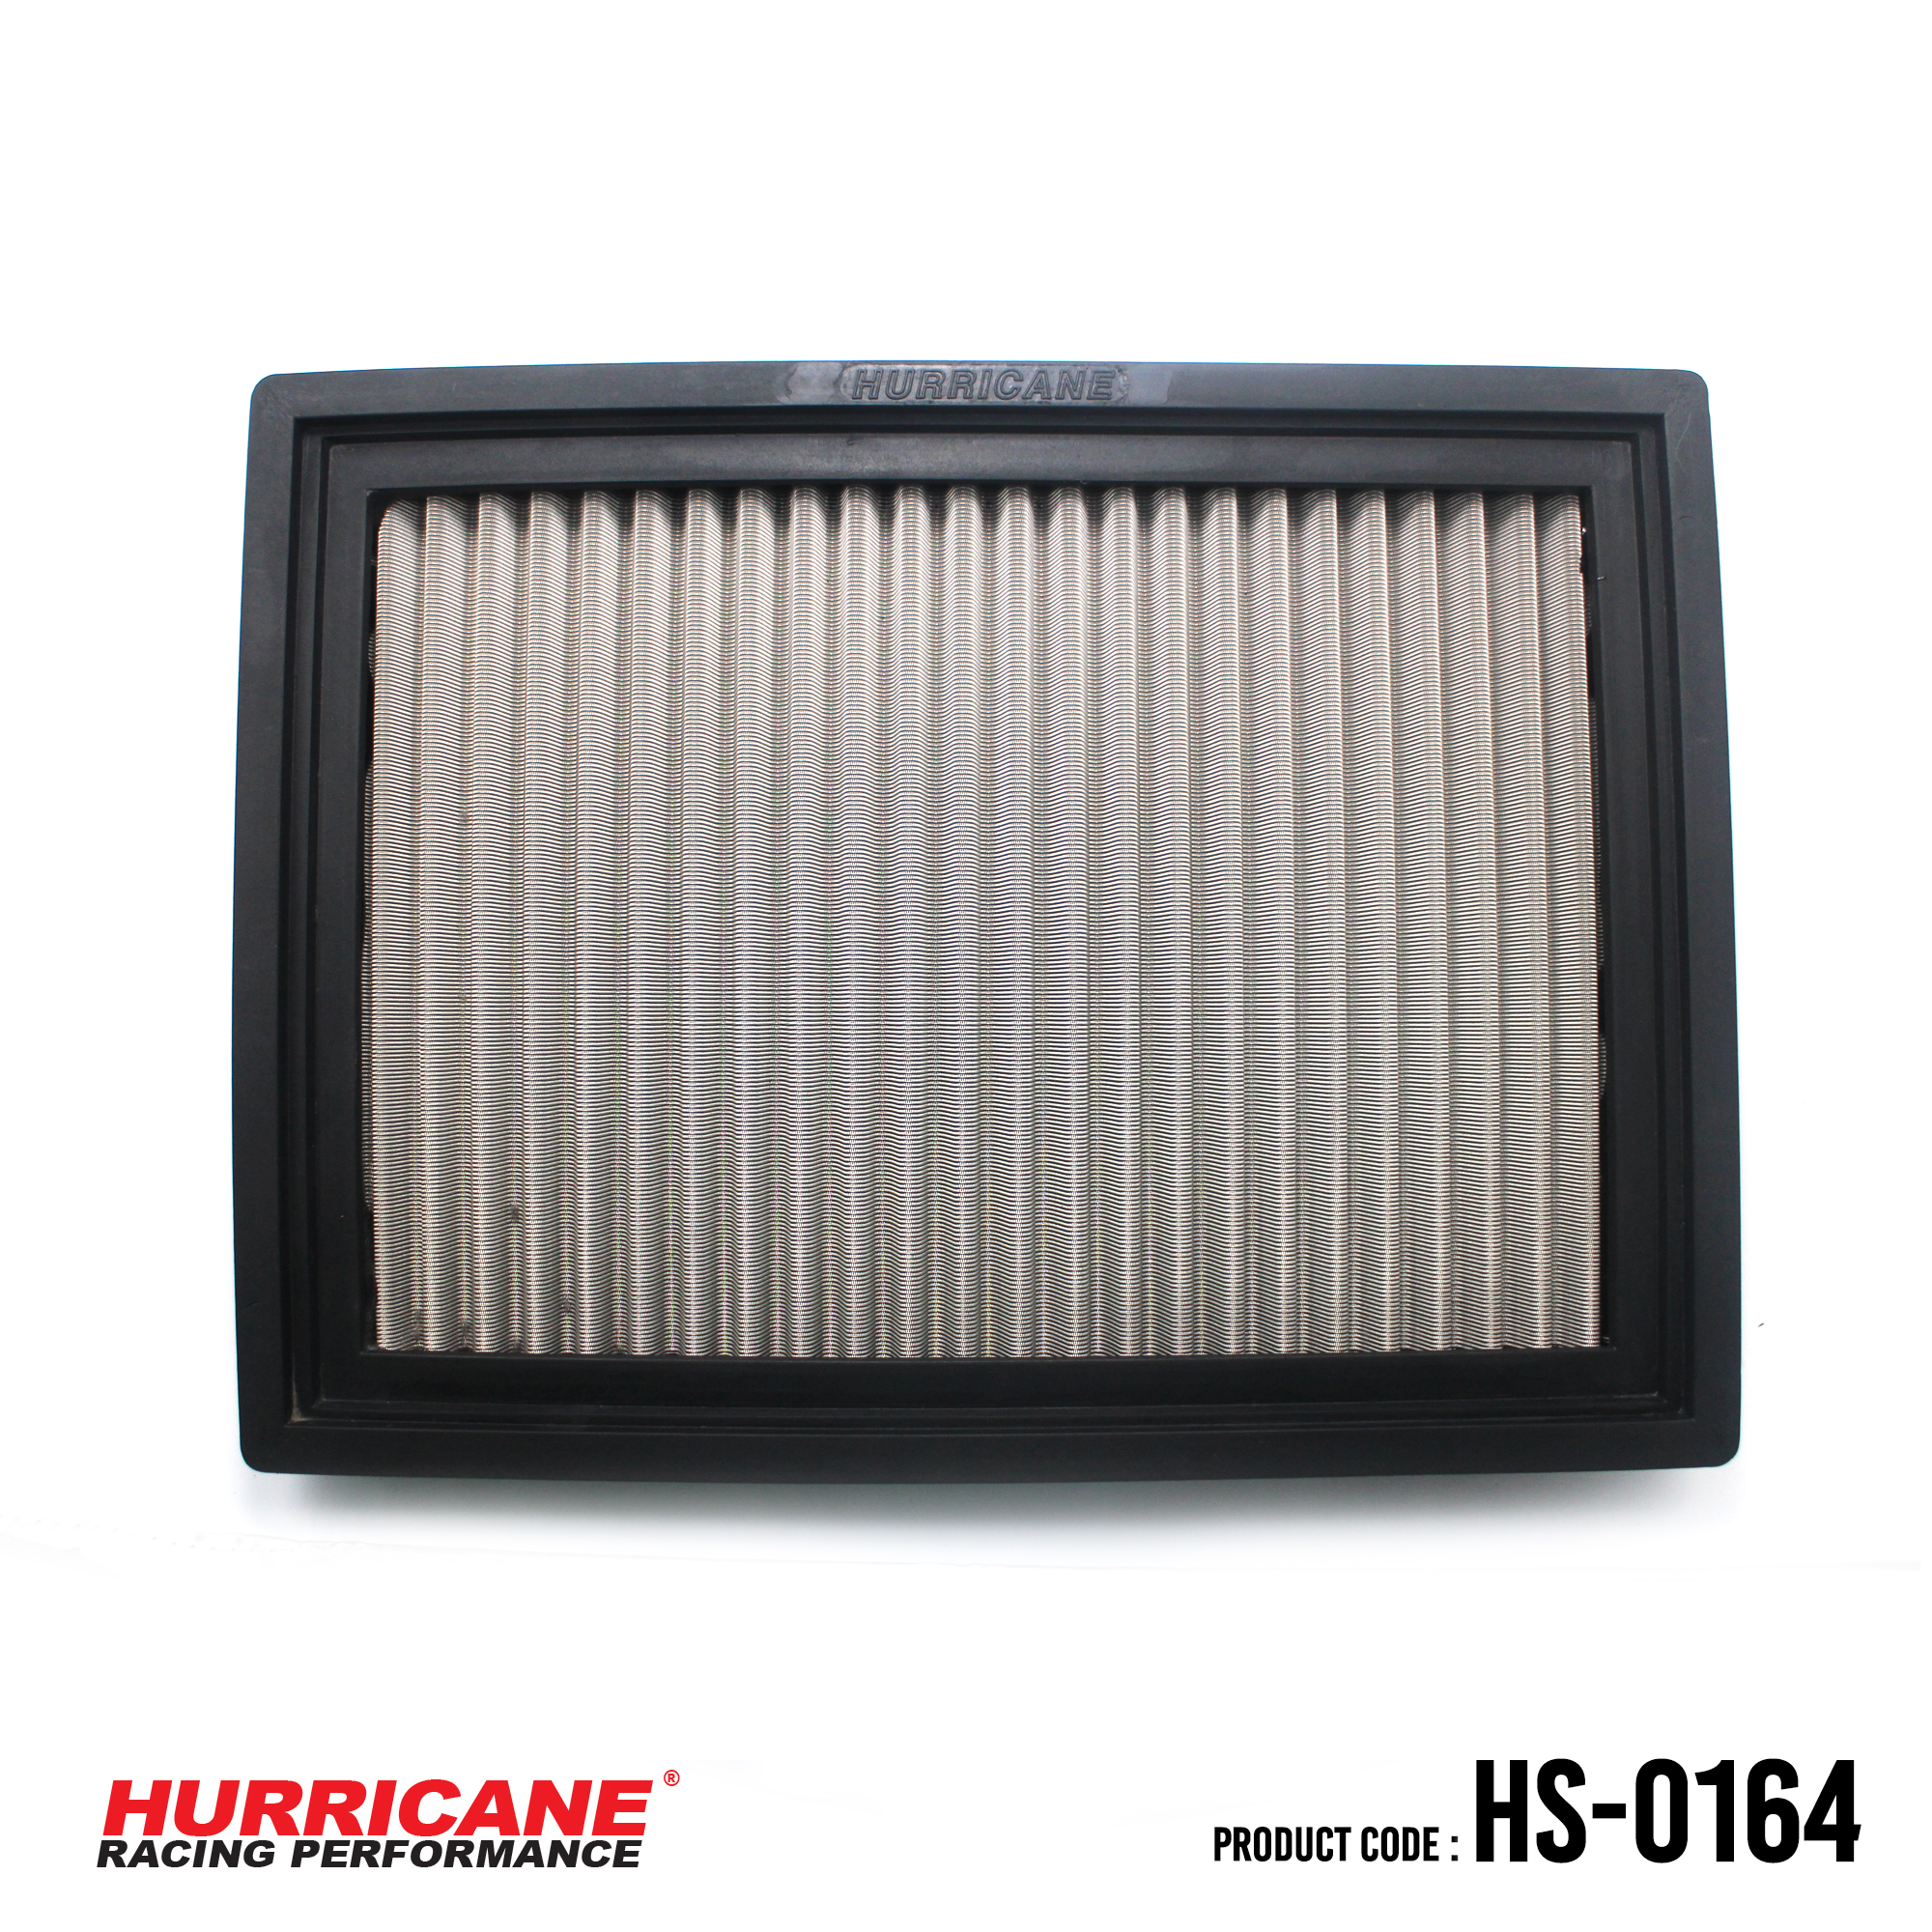 HURRICANE STAINLESS STEEL AIR FILTER FOR HS-0164 Volvo